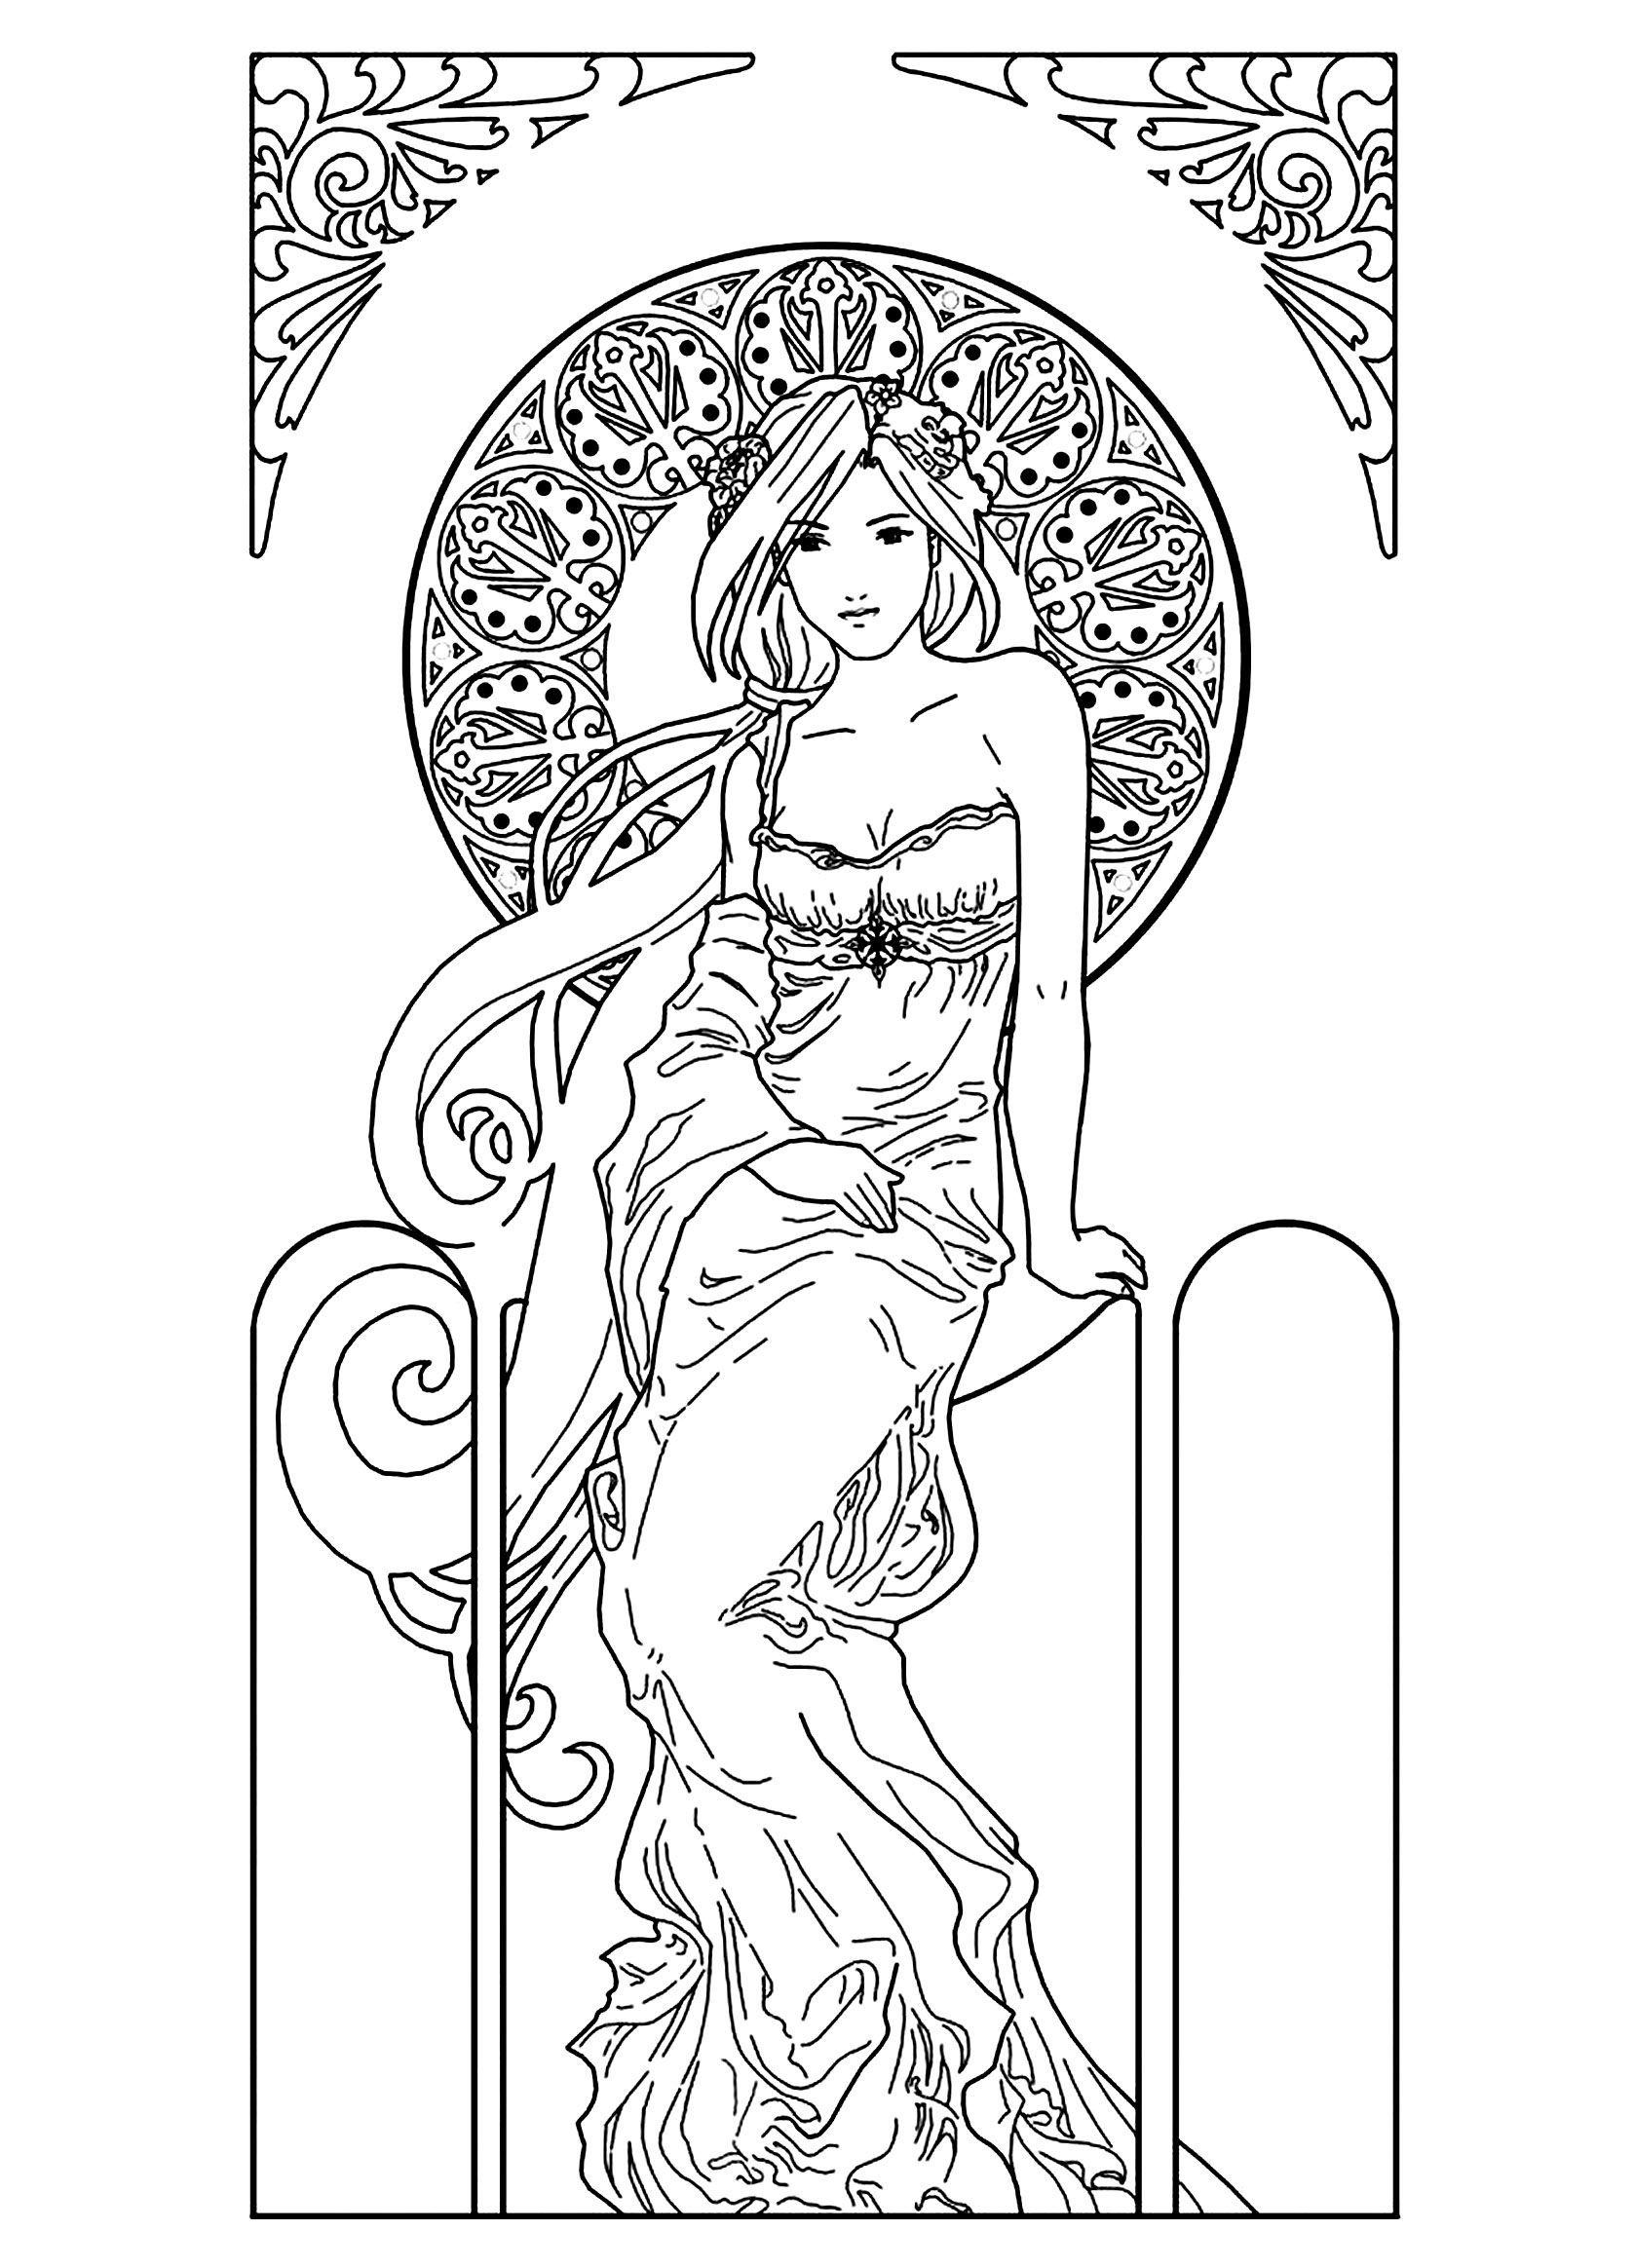 to print this free coloring page coloring drawing woman